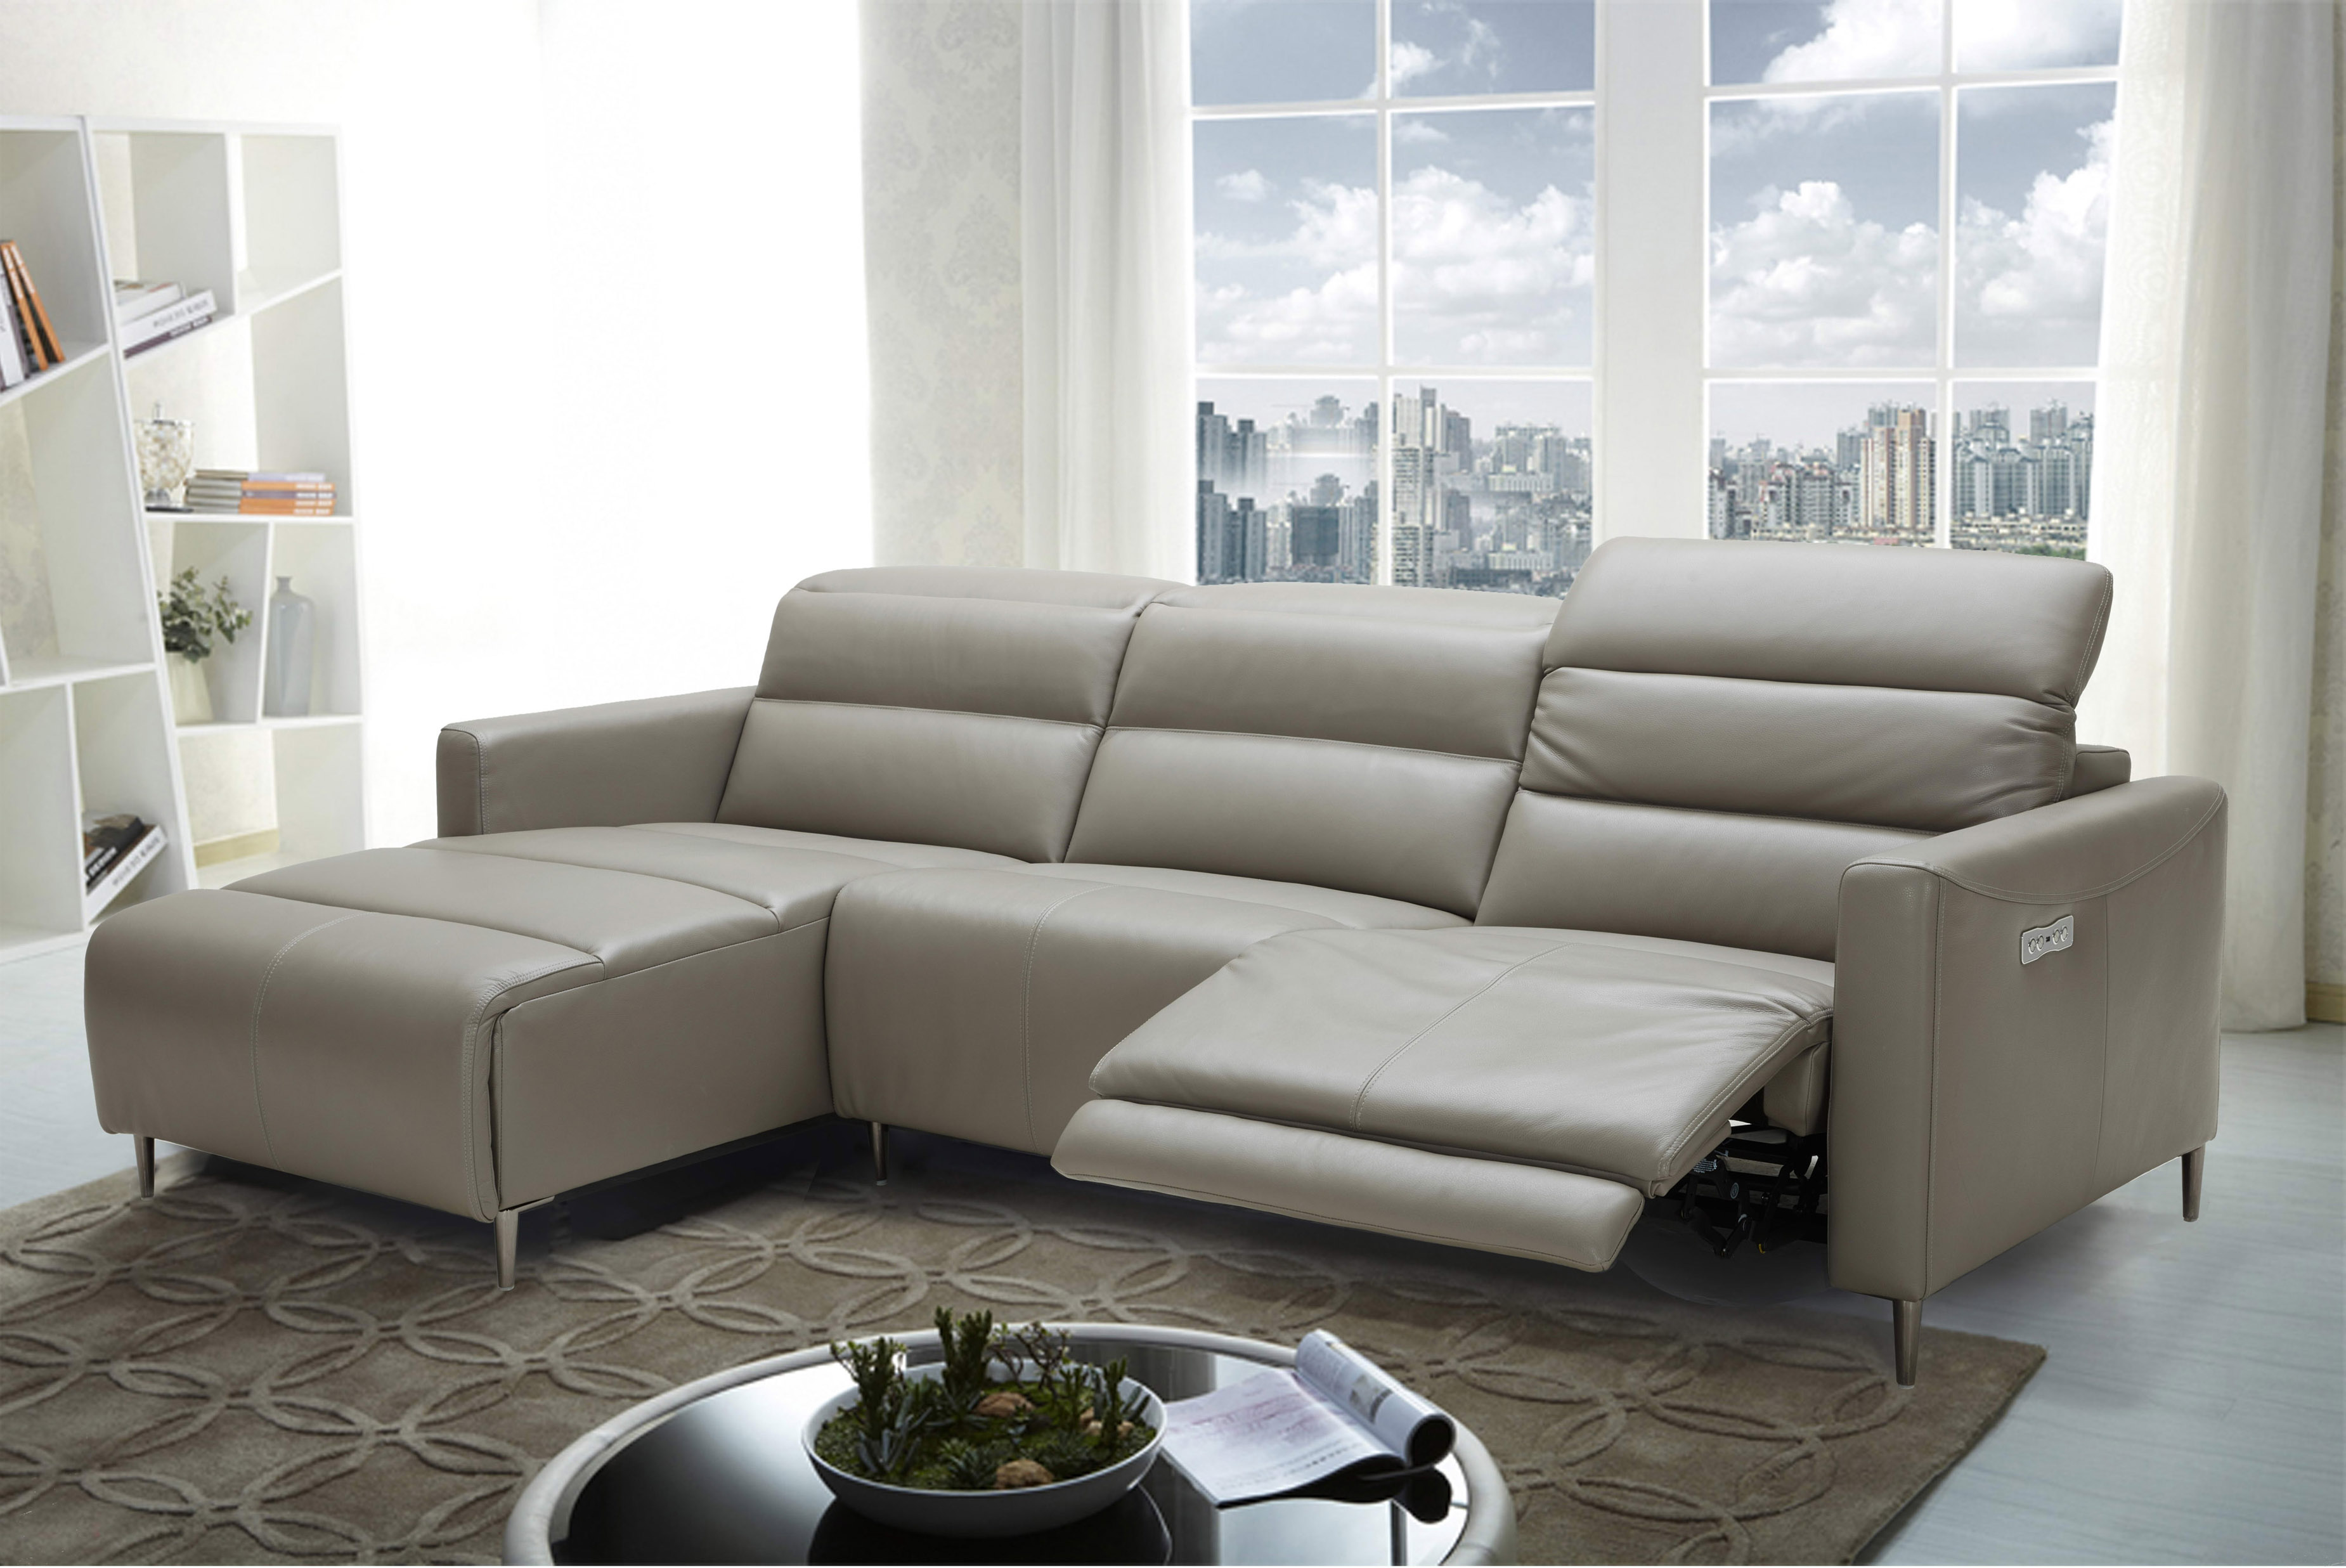 Exclusive Italian Leather Living Room Furniture Baltimore Maryland